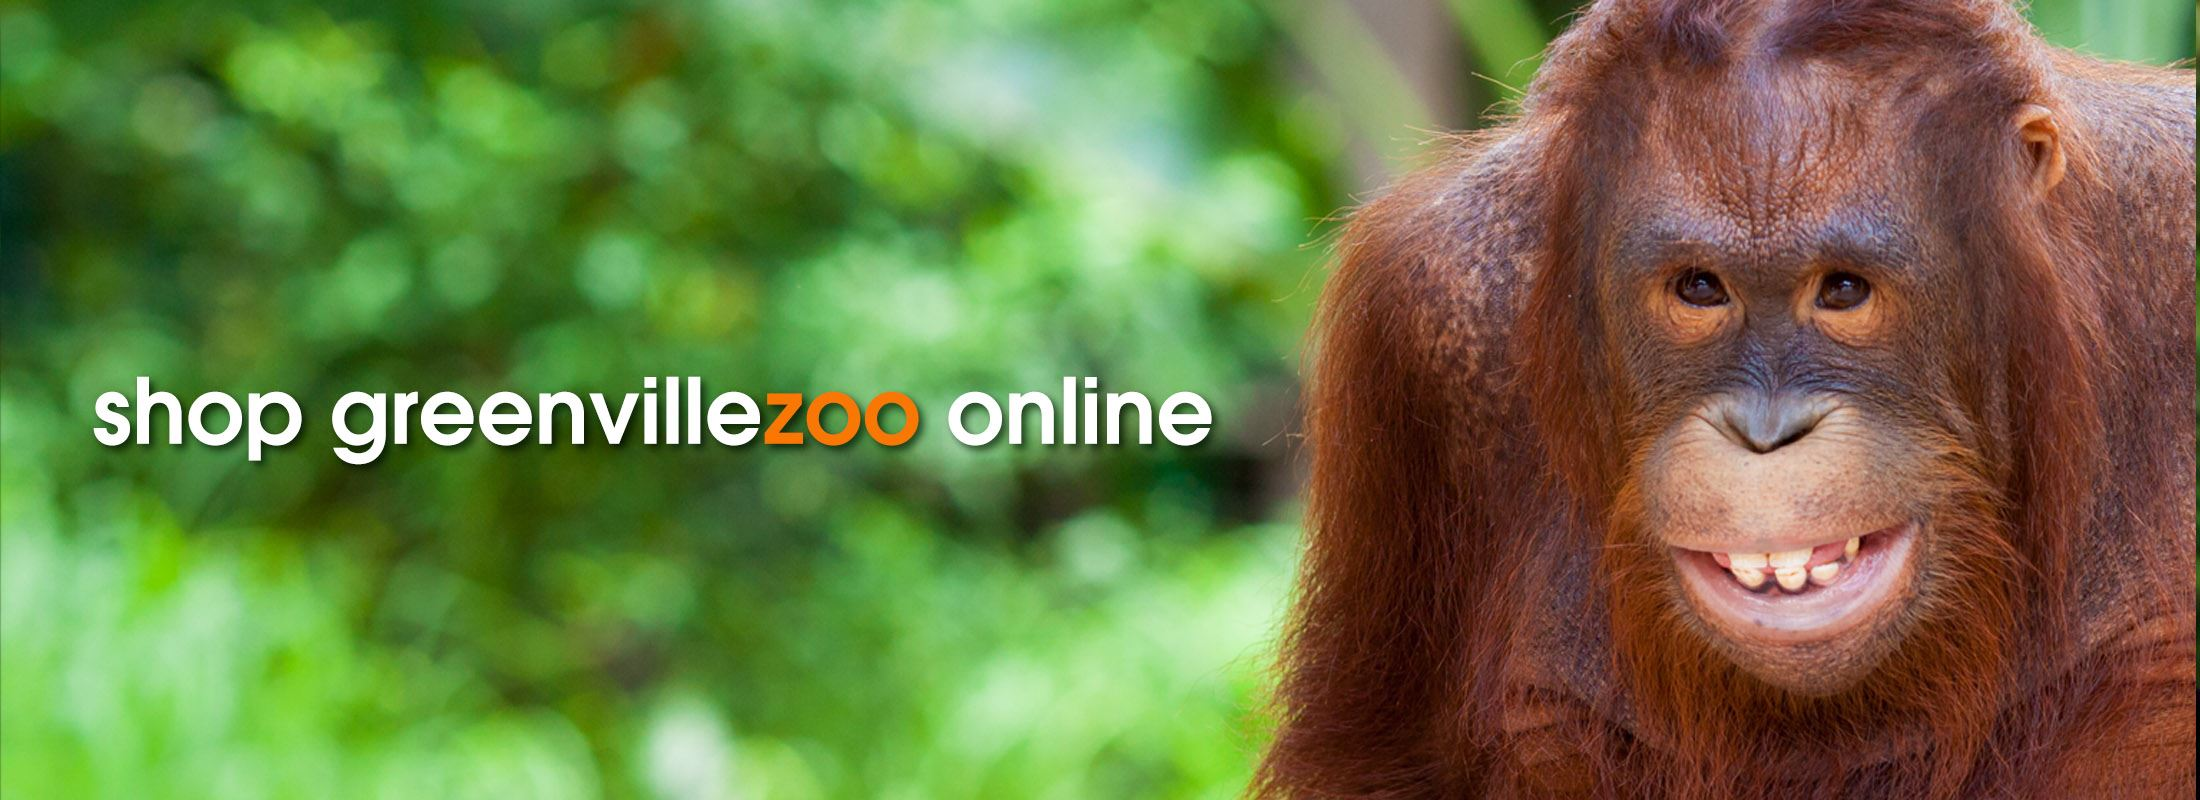 Shop Greenville Zoo online